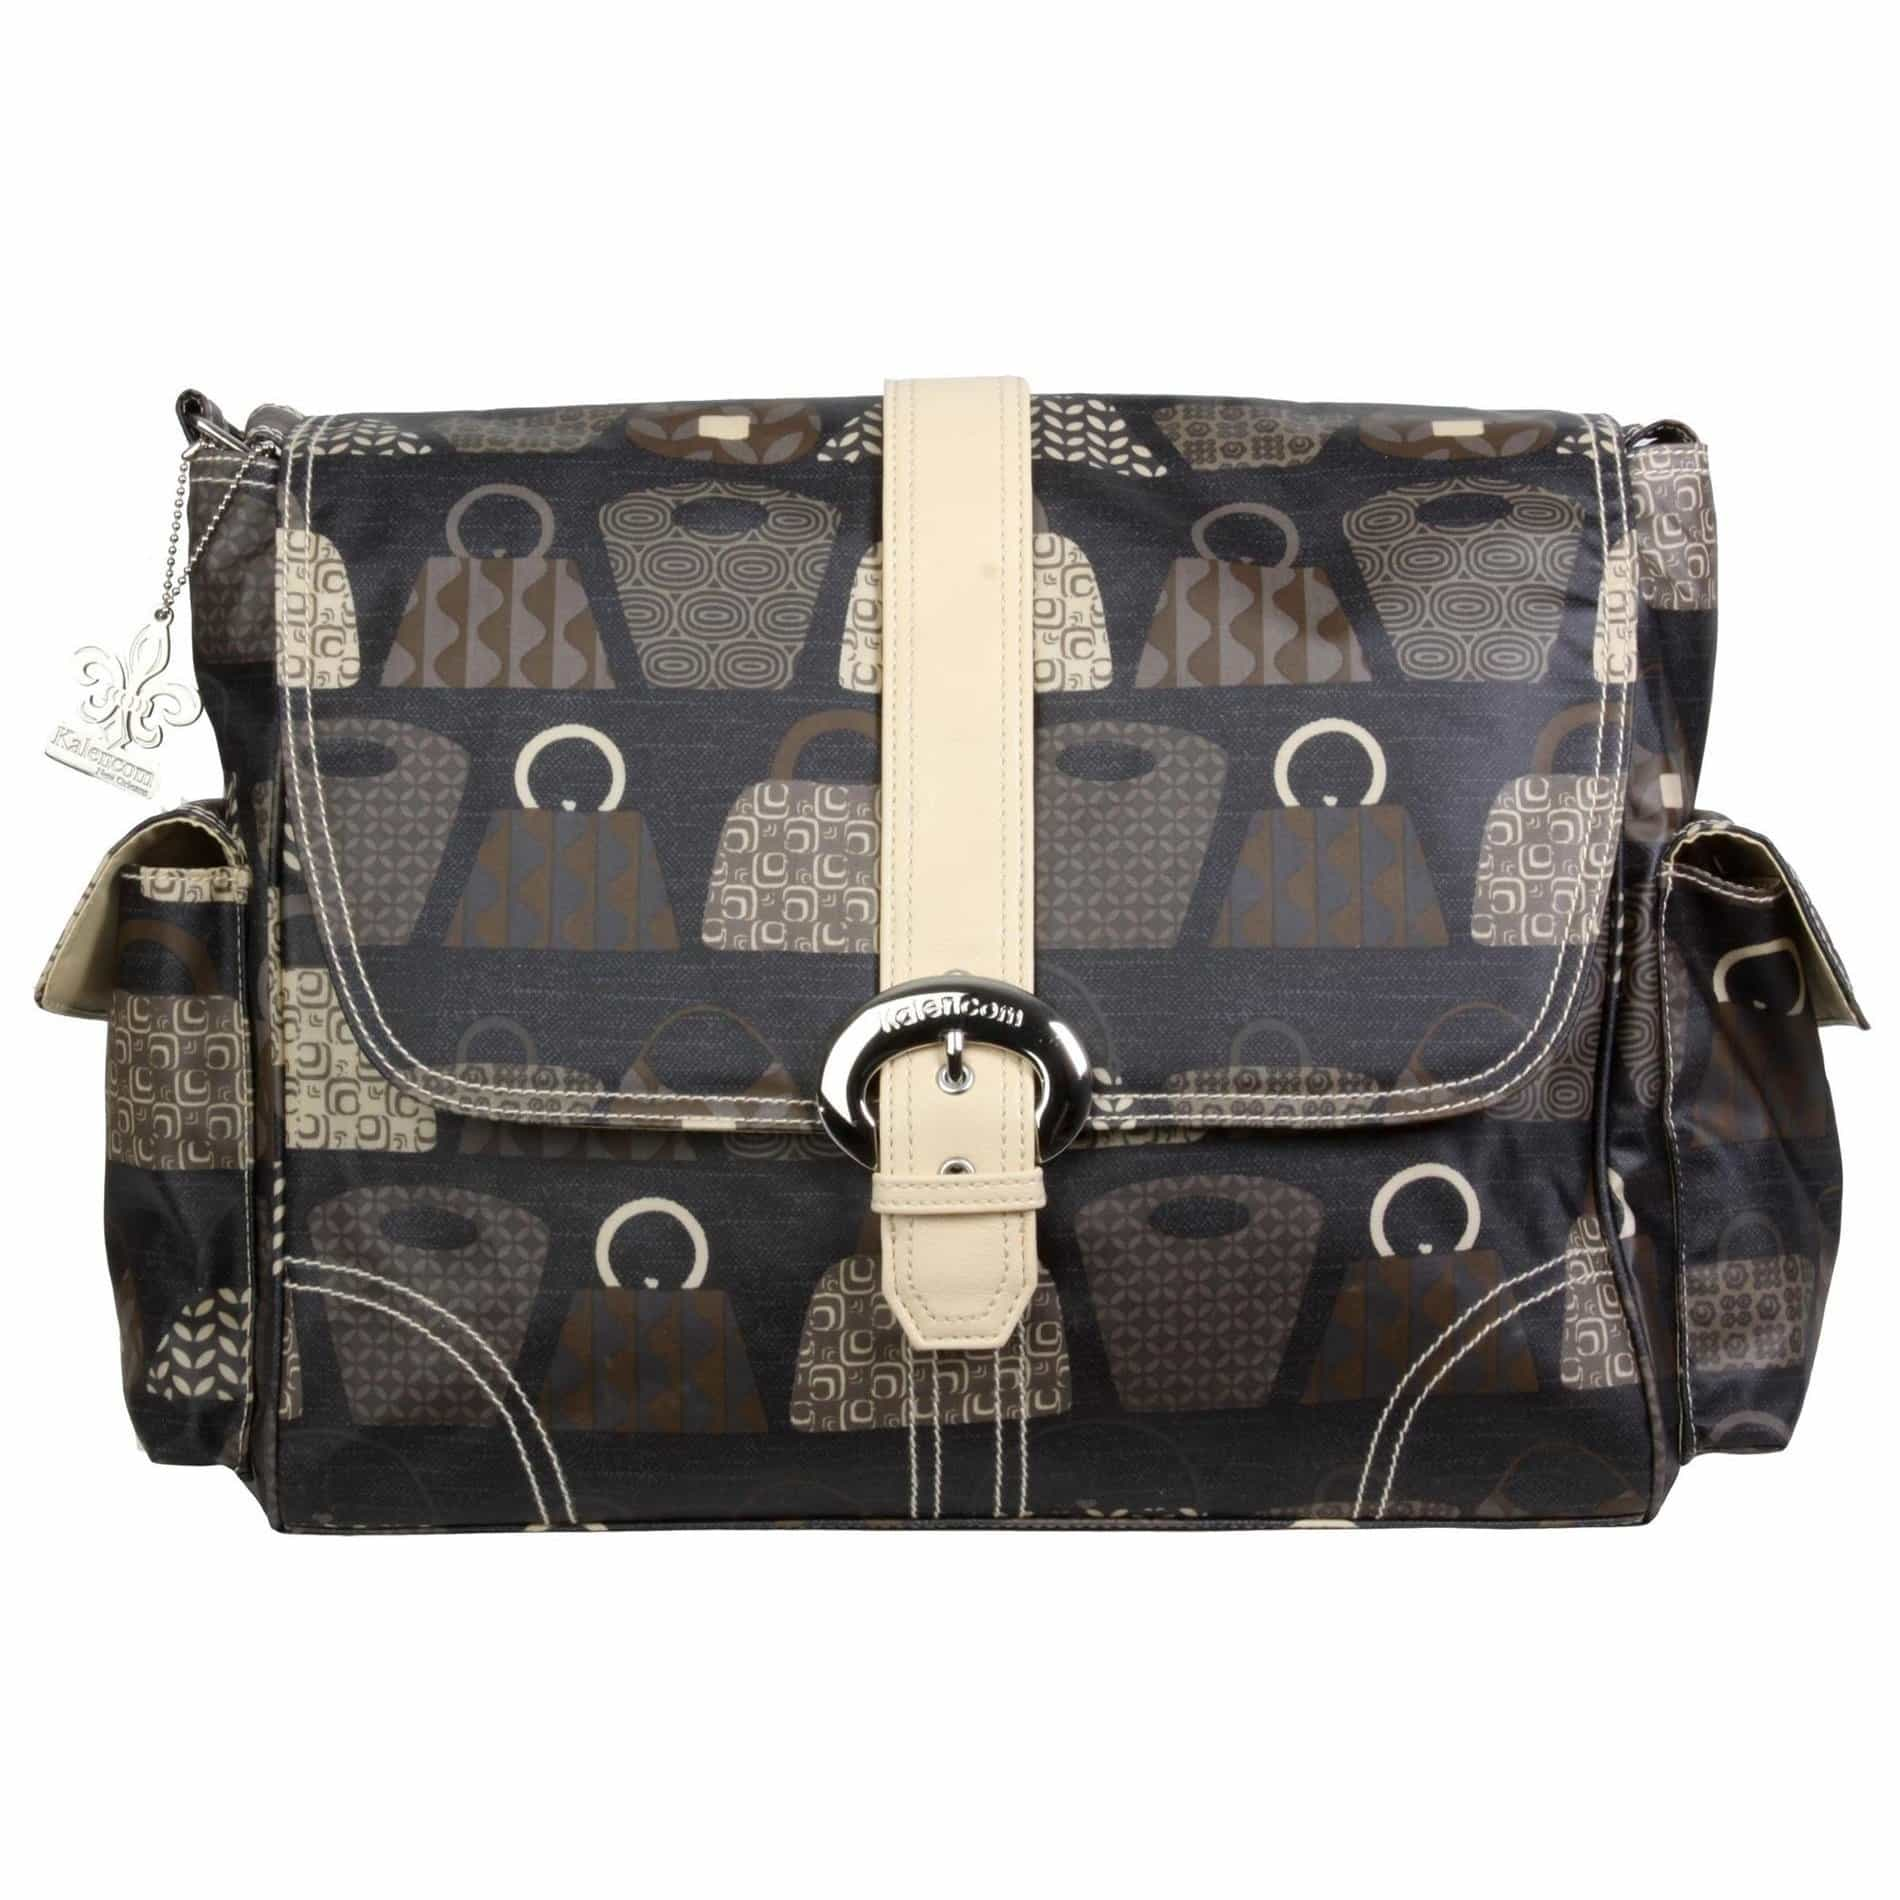 Bag Lady - Stone Matte Coated Buckle Diaper Bag | Style 2960 - Kalencom-Diaper Bags-Jack and Jill Boutique